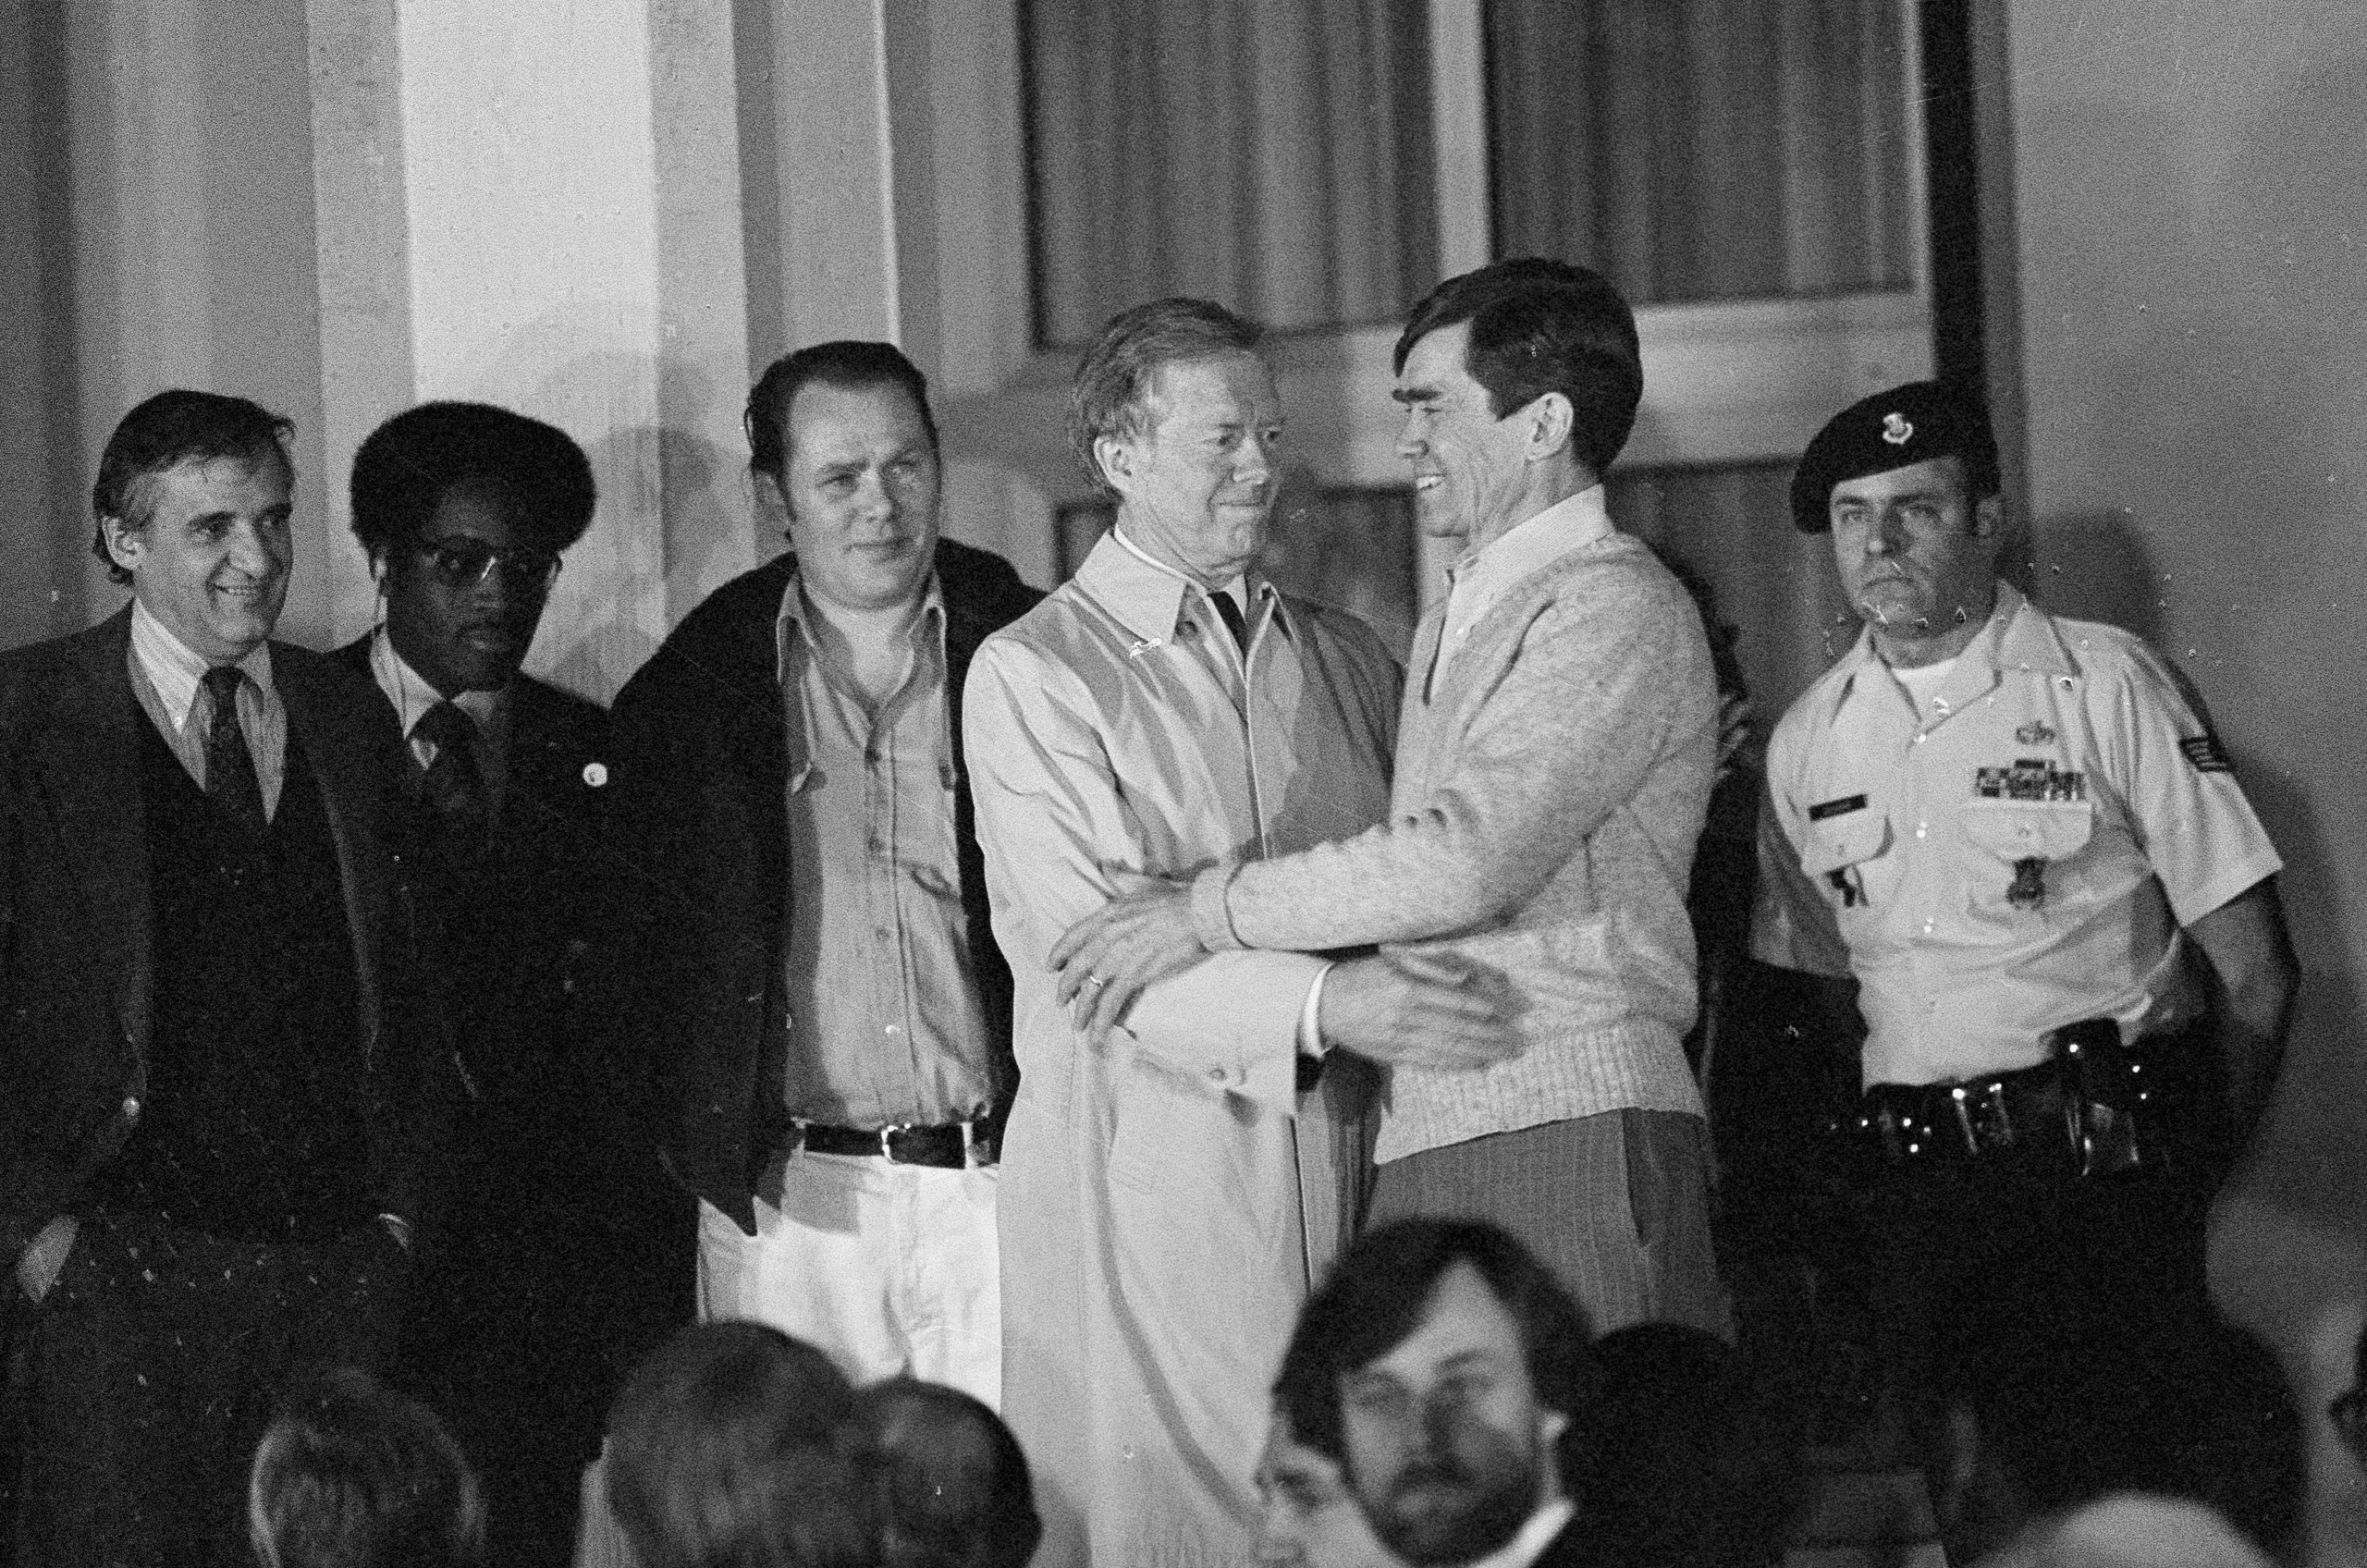 Former U.S. president Jimmy Carter, who came to Wiesbaden to greet the U.S. hostages released from captivity, embraces one of the former hostages, believed to be Bruce Laingen, Jan. 21, 1981.